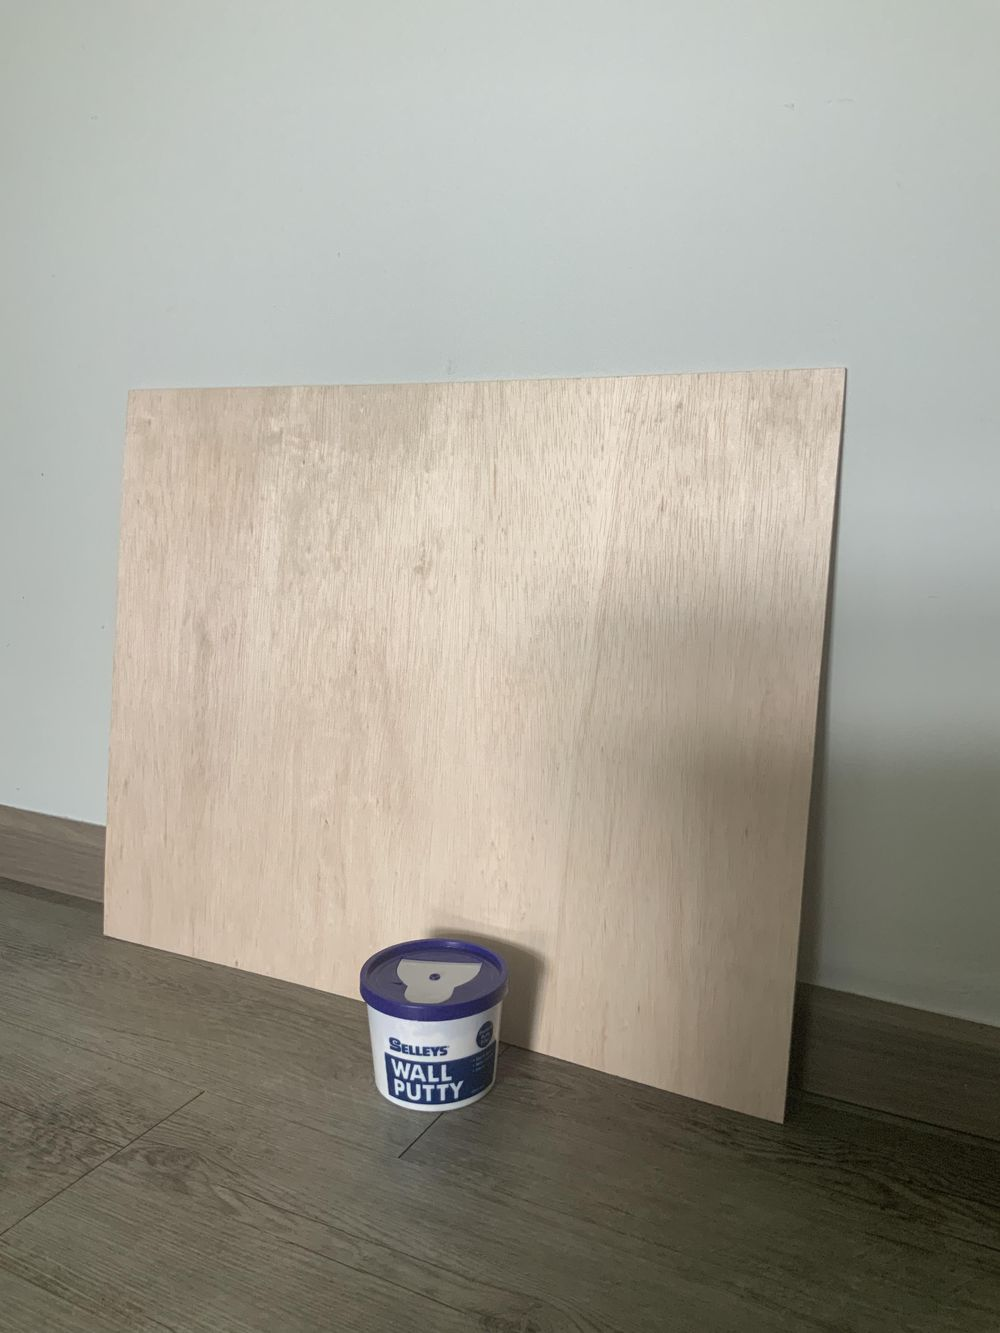 Acrylic putty board - image 1 - student project